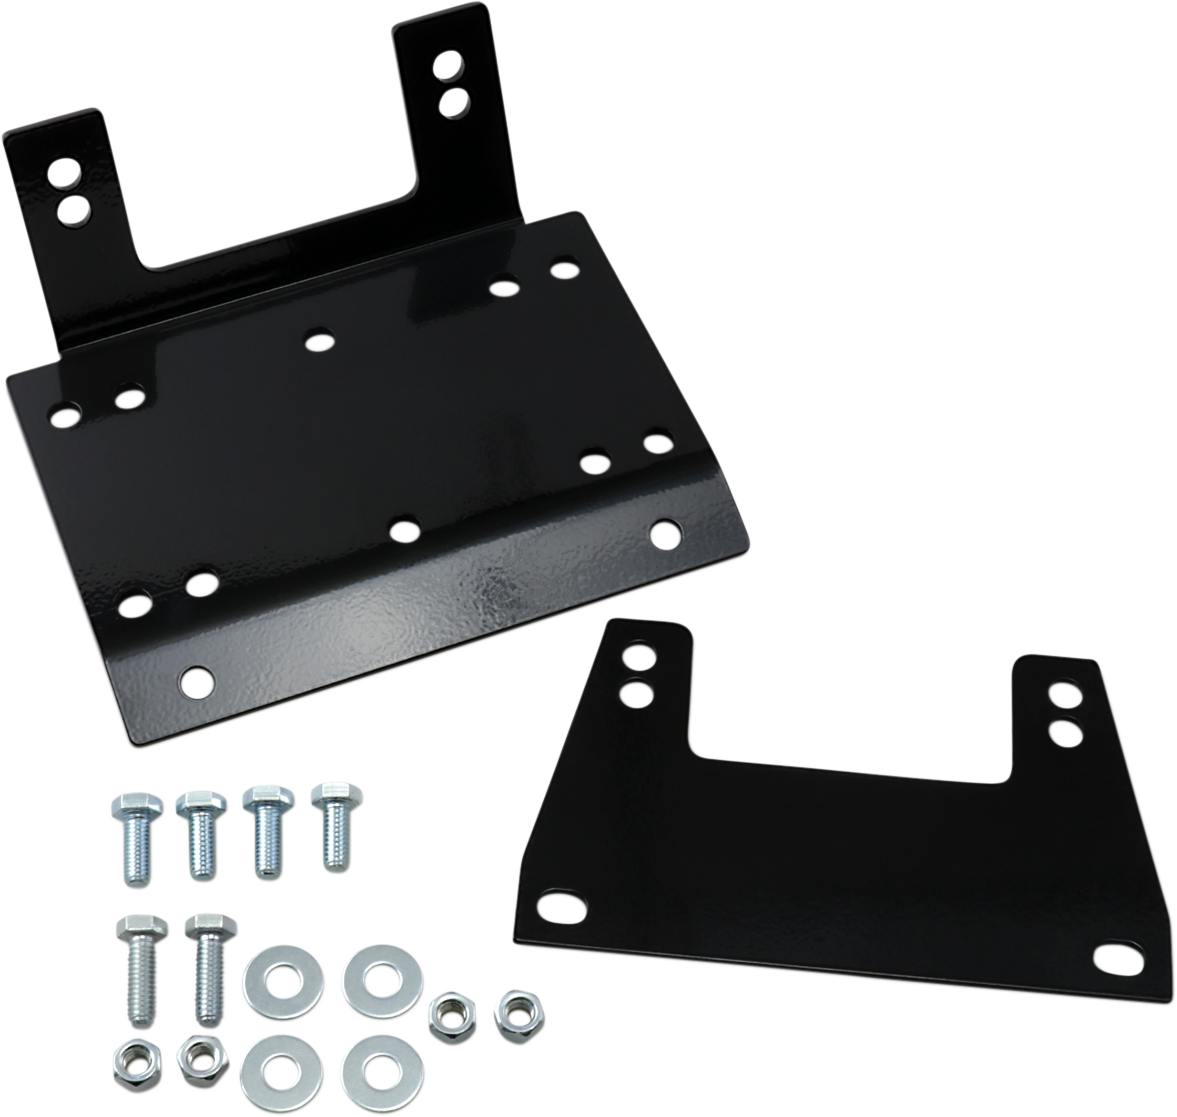 Moose Utility ATV Front Winch Mount for 08-12 Arctic Cat 366 Automatic 425i 4x4